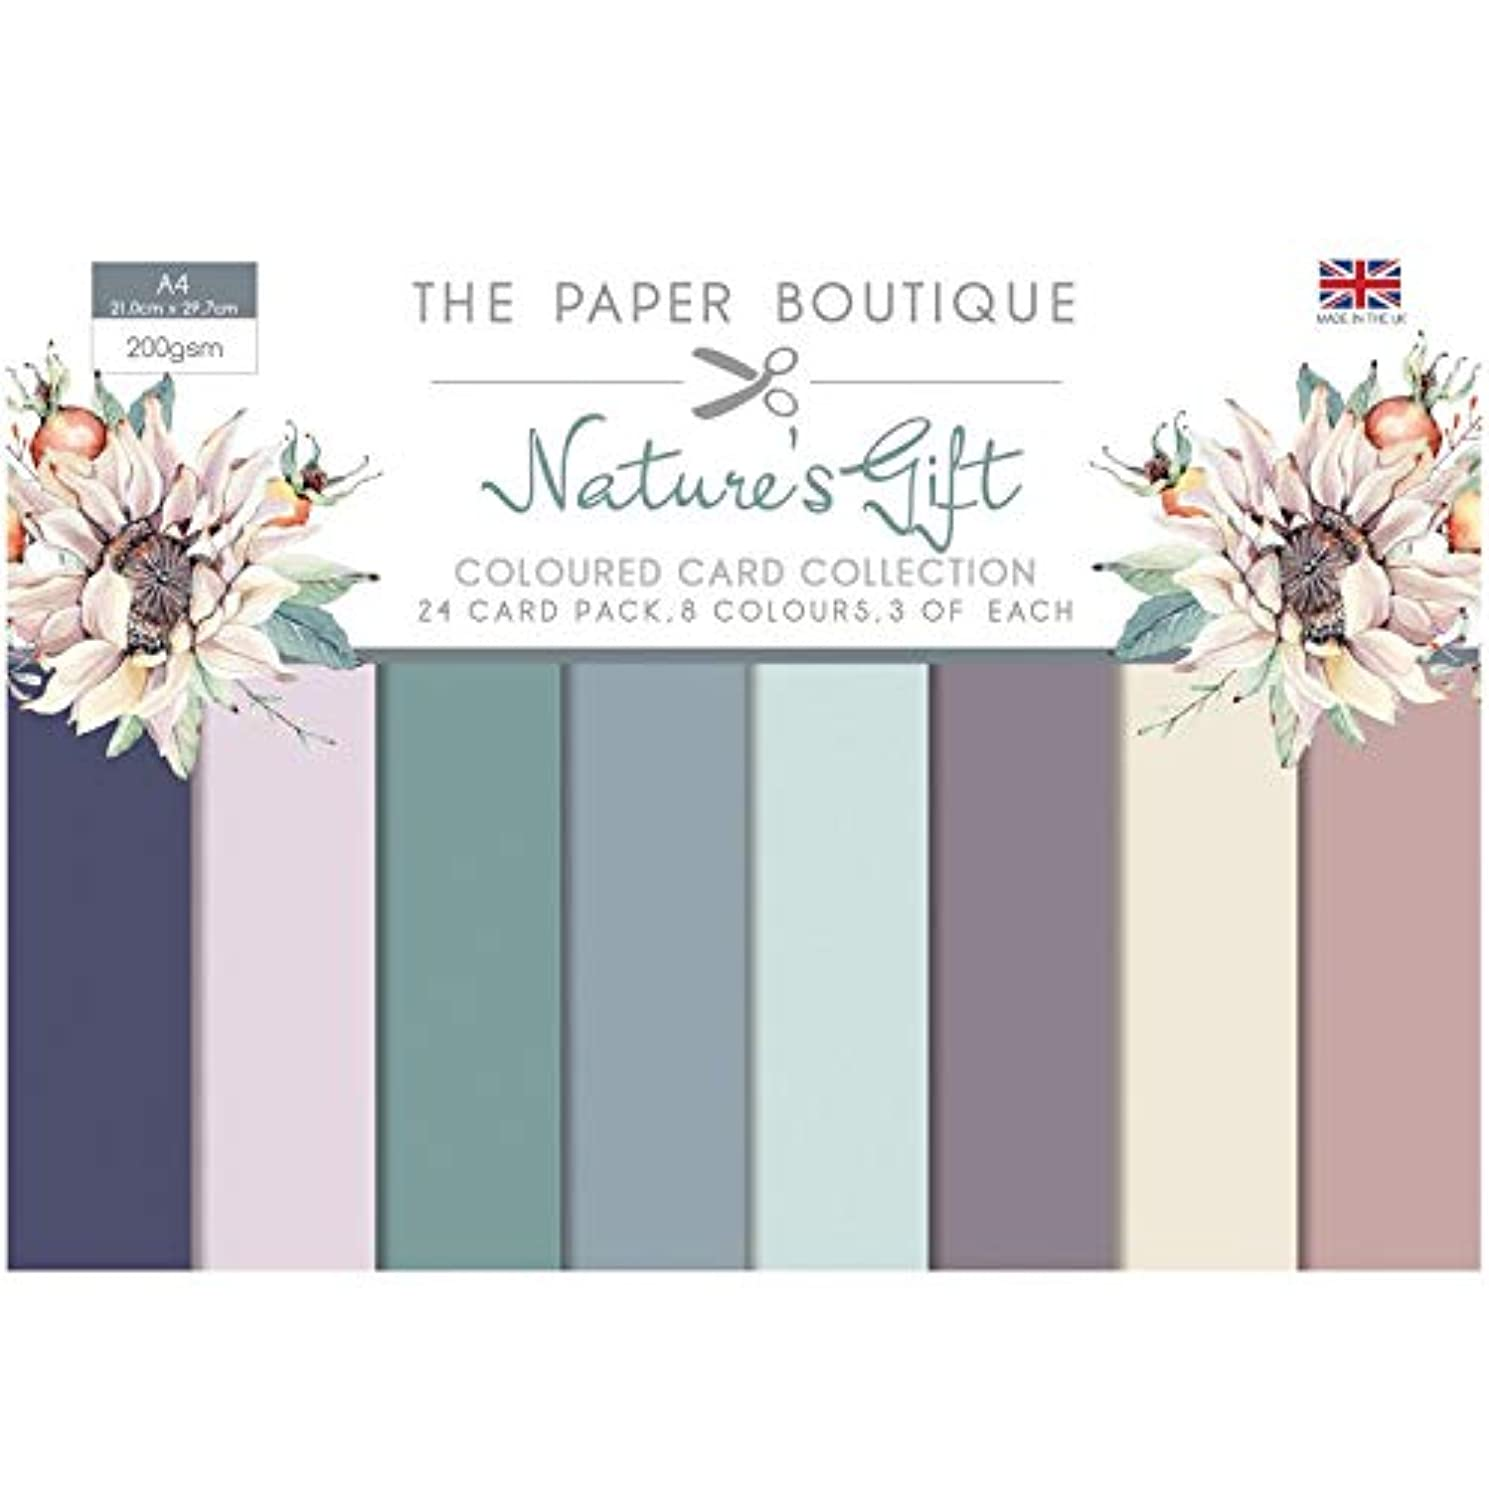 The Paper Boutique Nature's Gift Coloured Card Collection